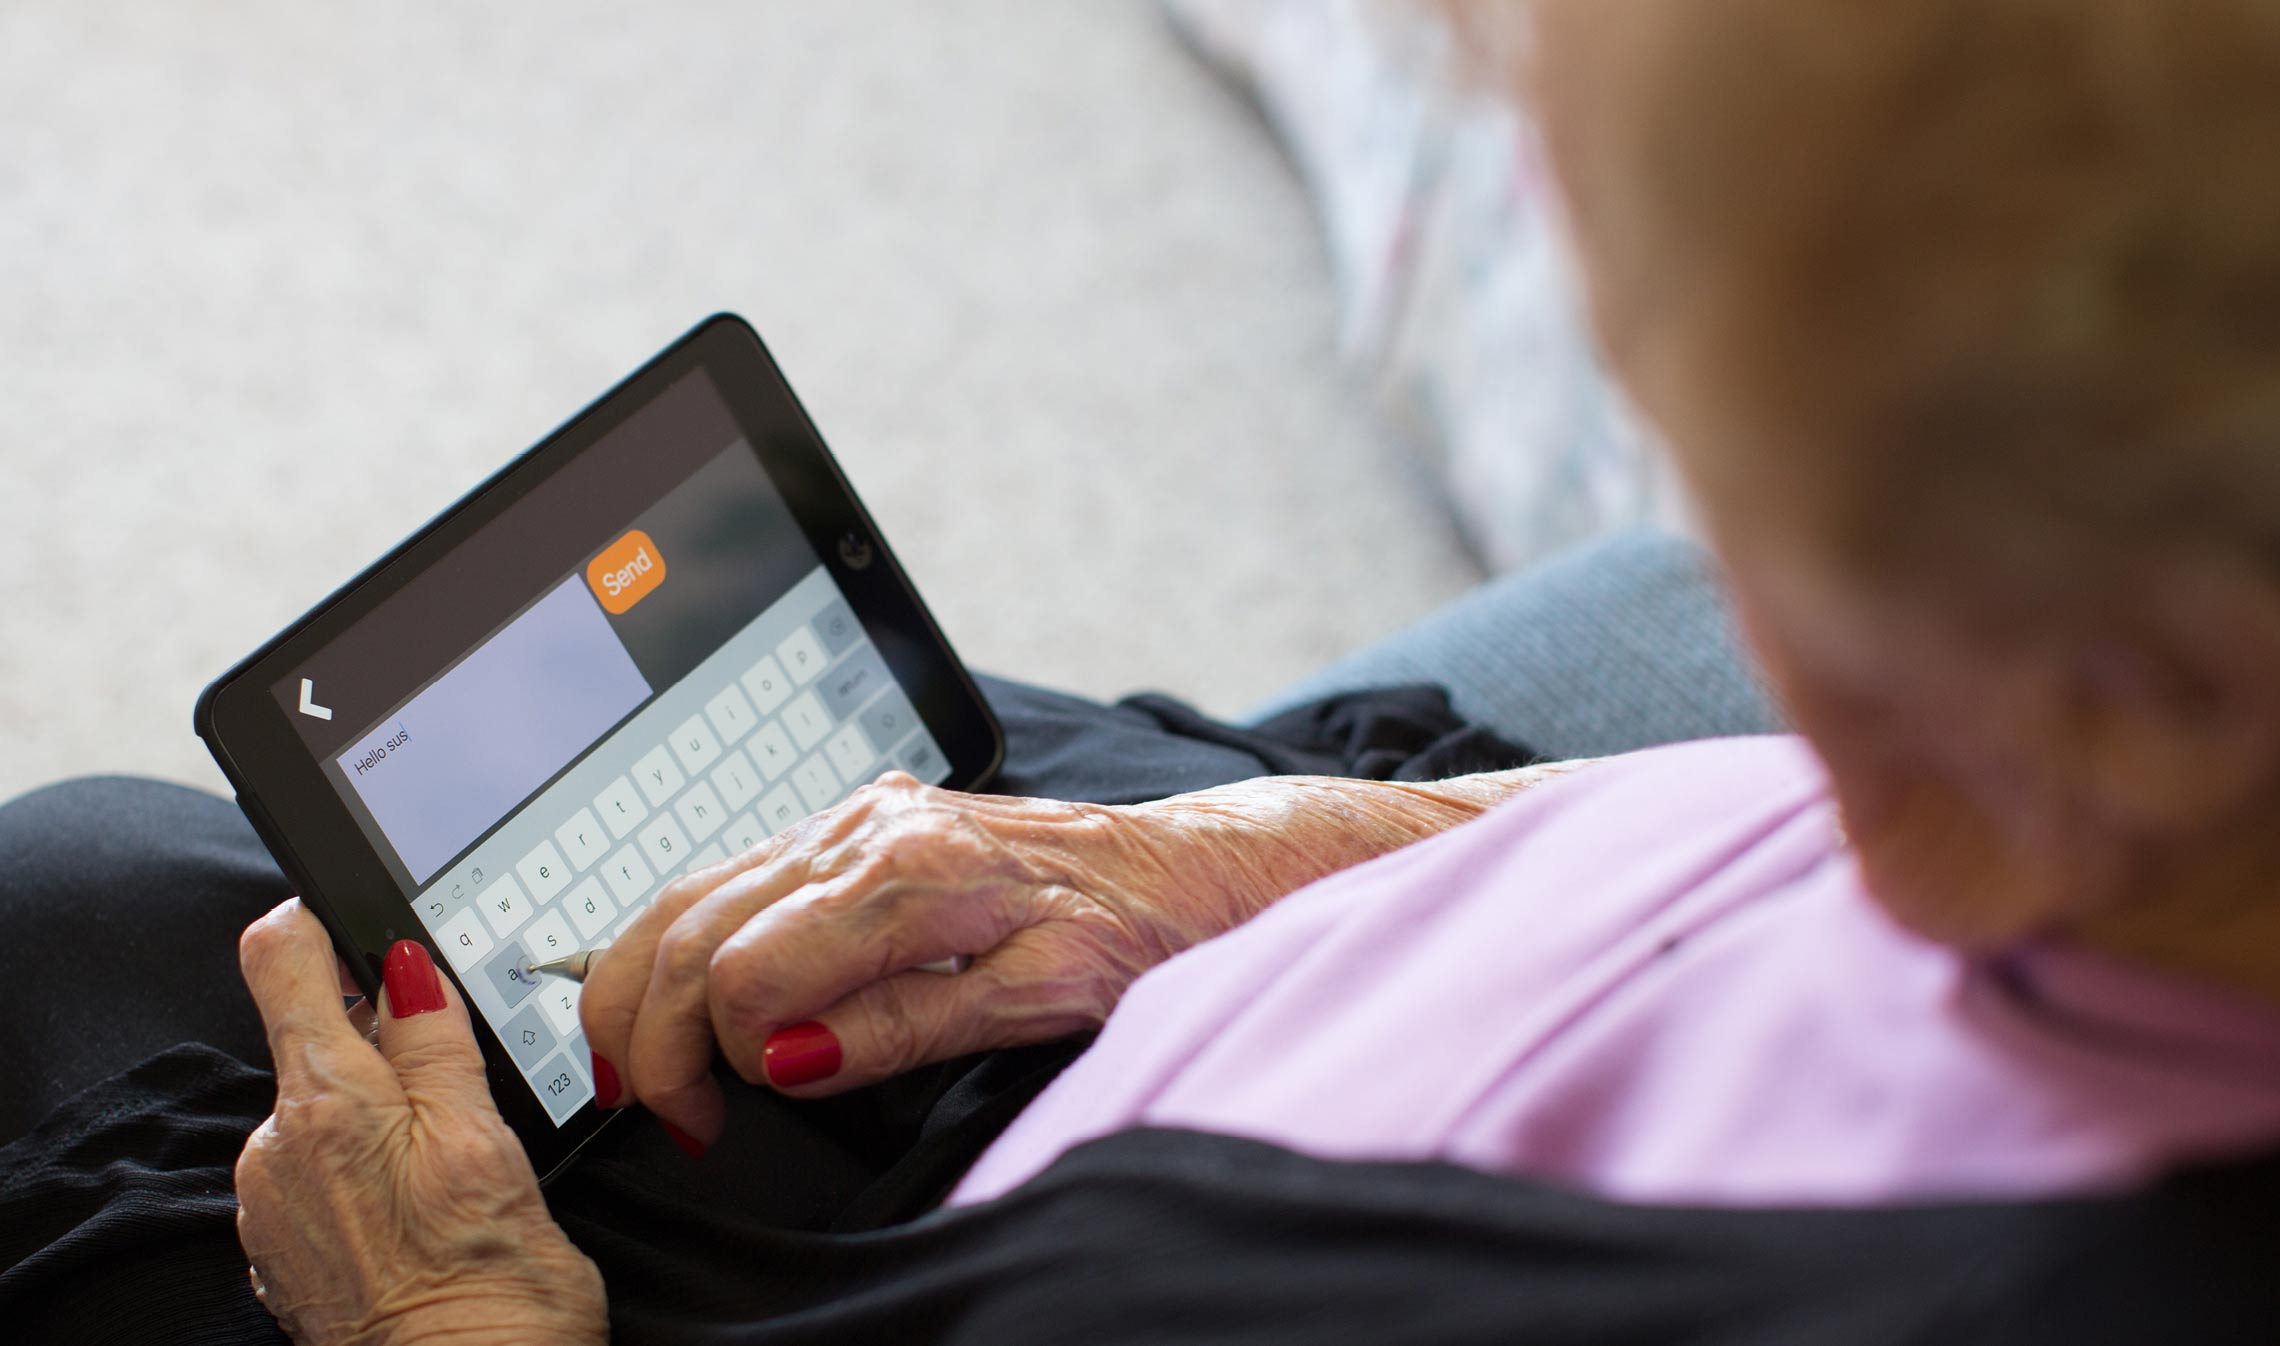 HOW CAN TECHNOLOGY HELP US AGE GRACEFULLY?